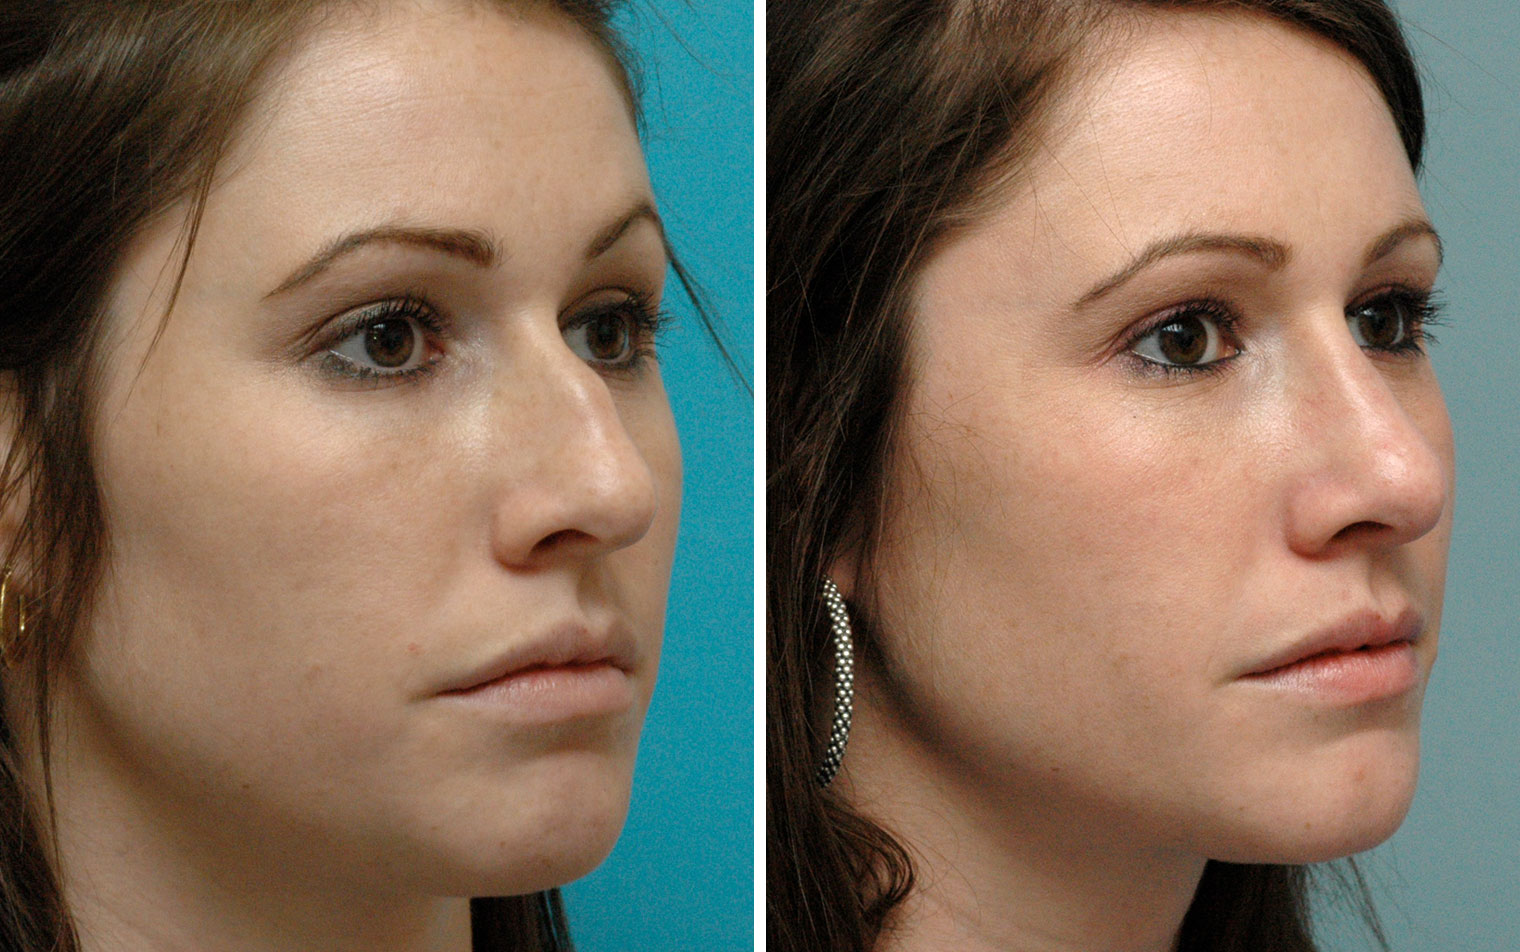 Rhinoplasty Before And After Rhinoplasty Bef...